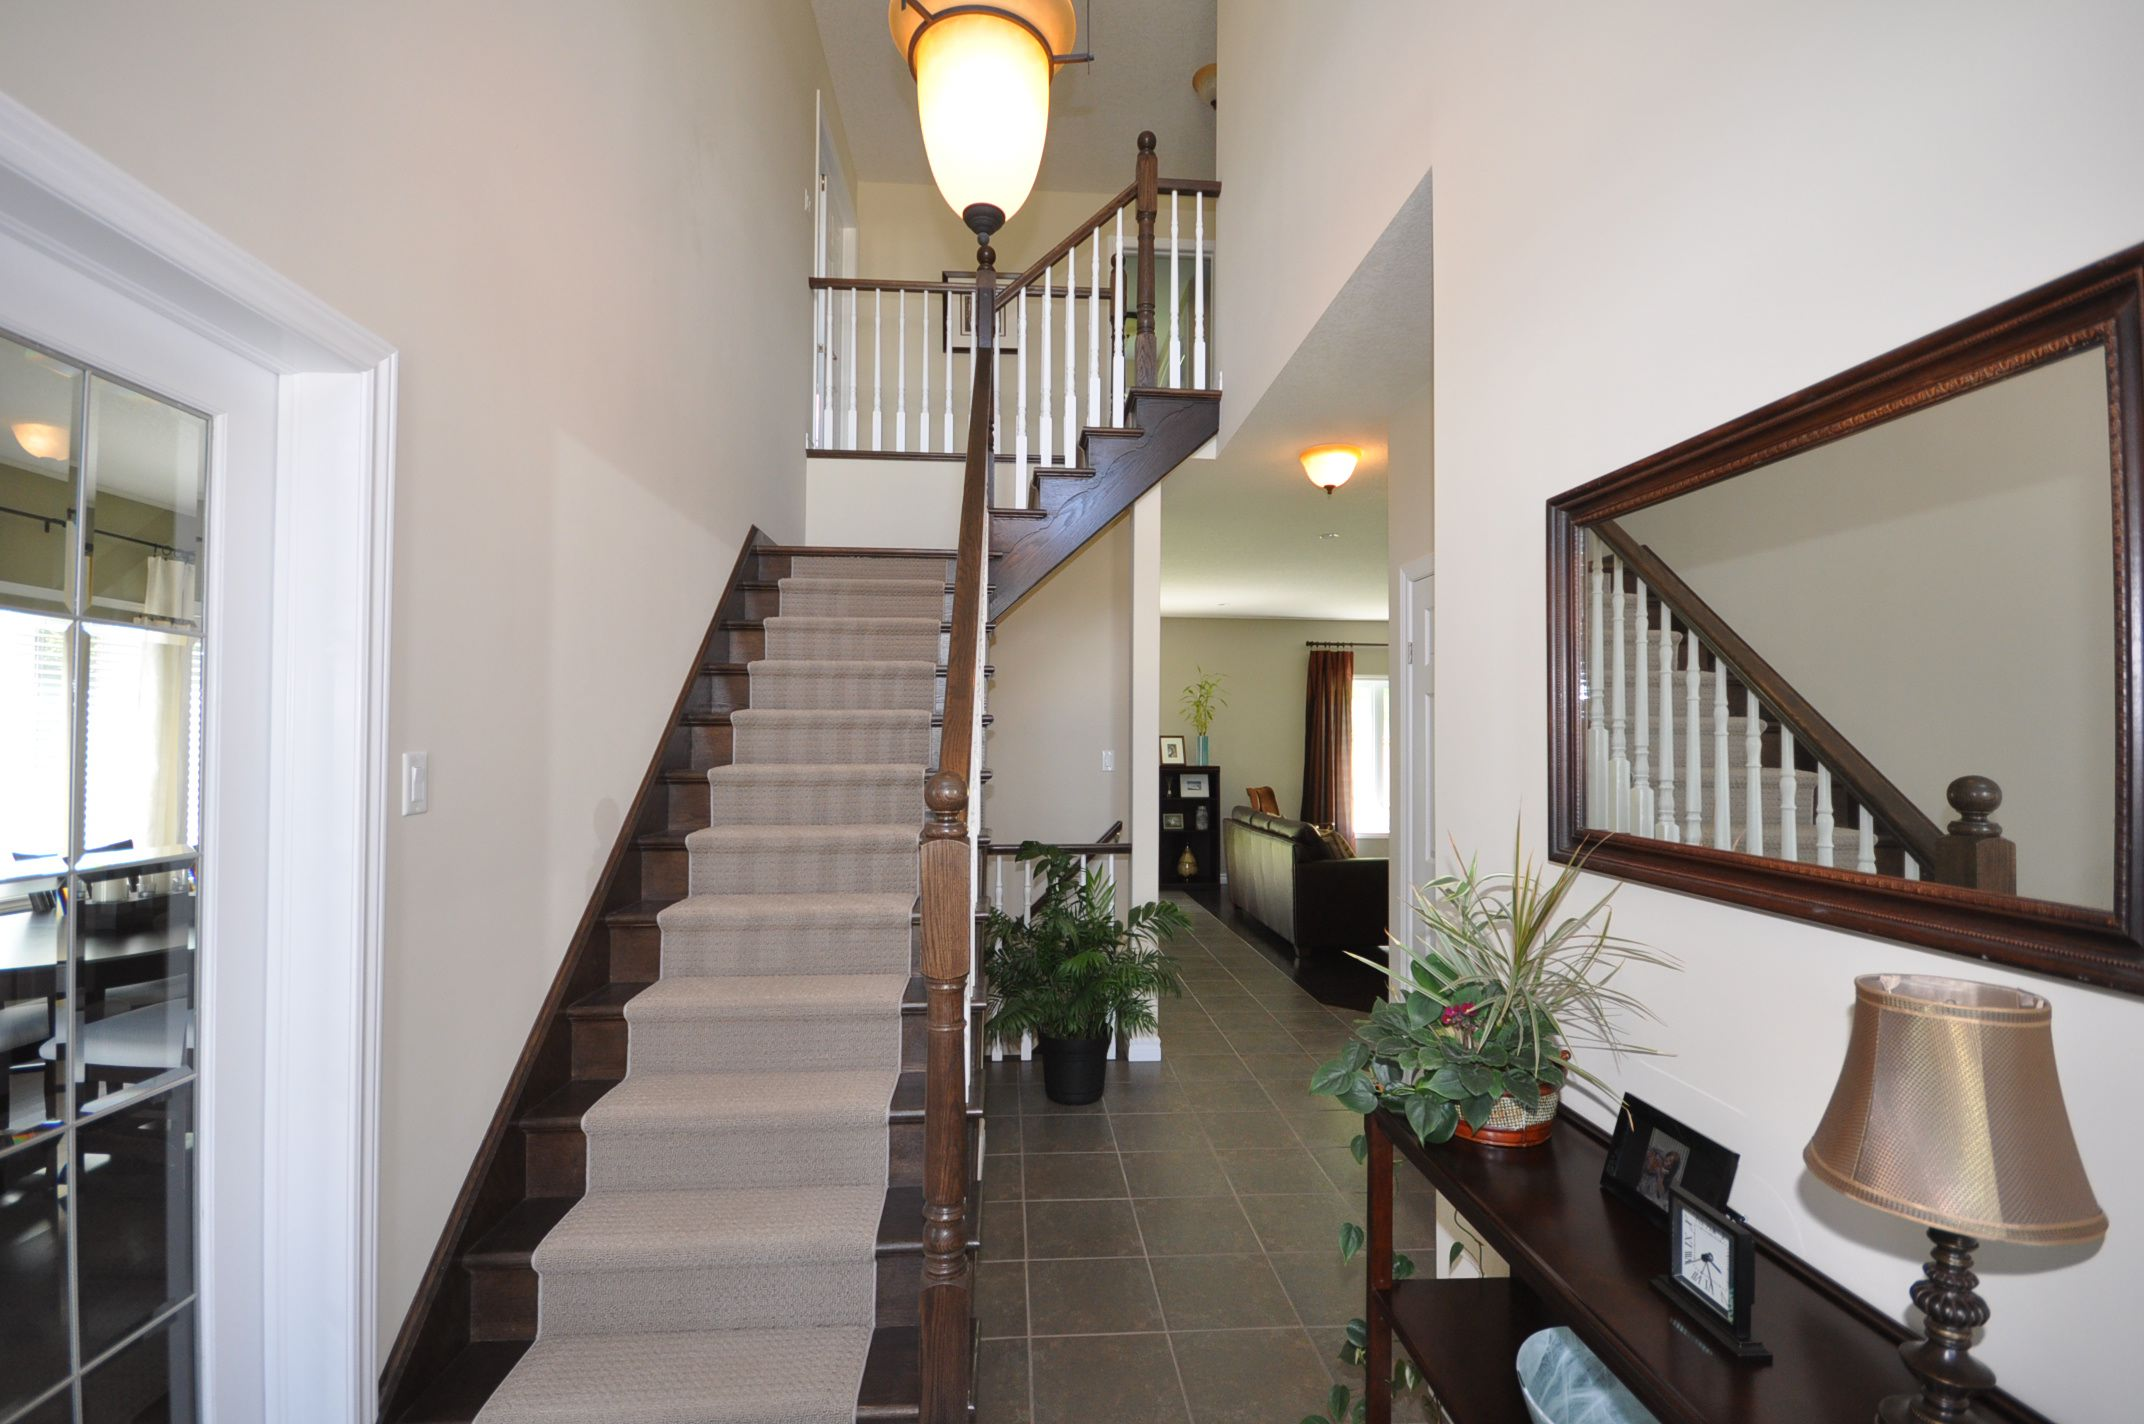 Oak staircase to 2nd floor